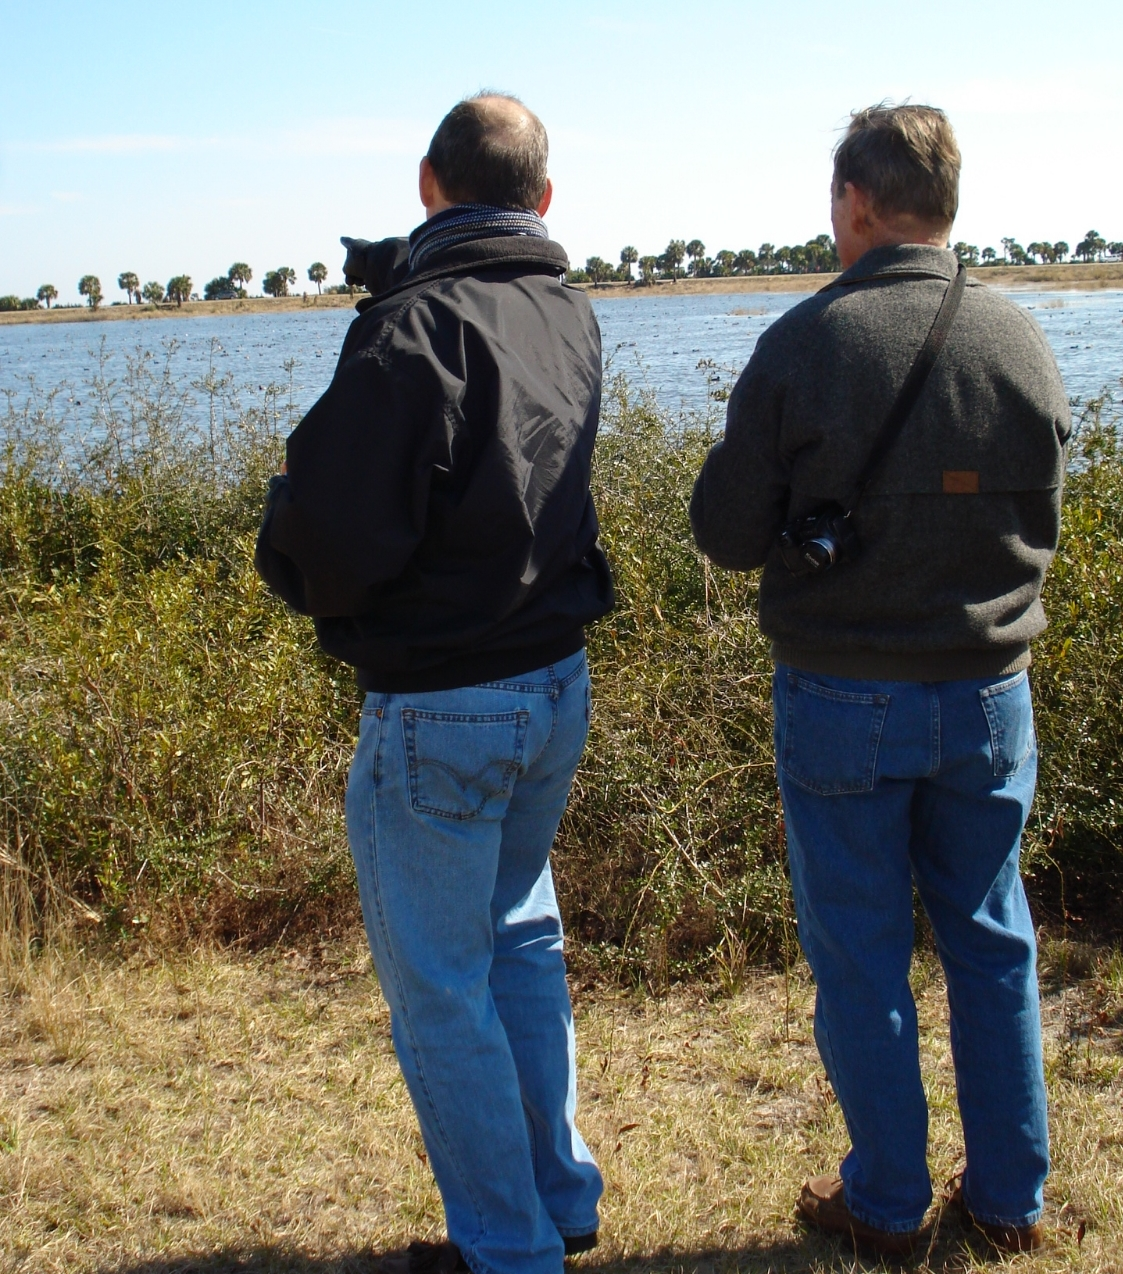 Father and son enjoying a moment at St Marks National Wildlife Refuge